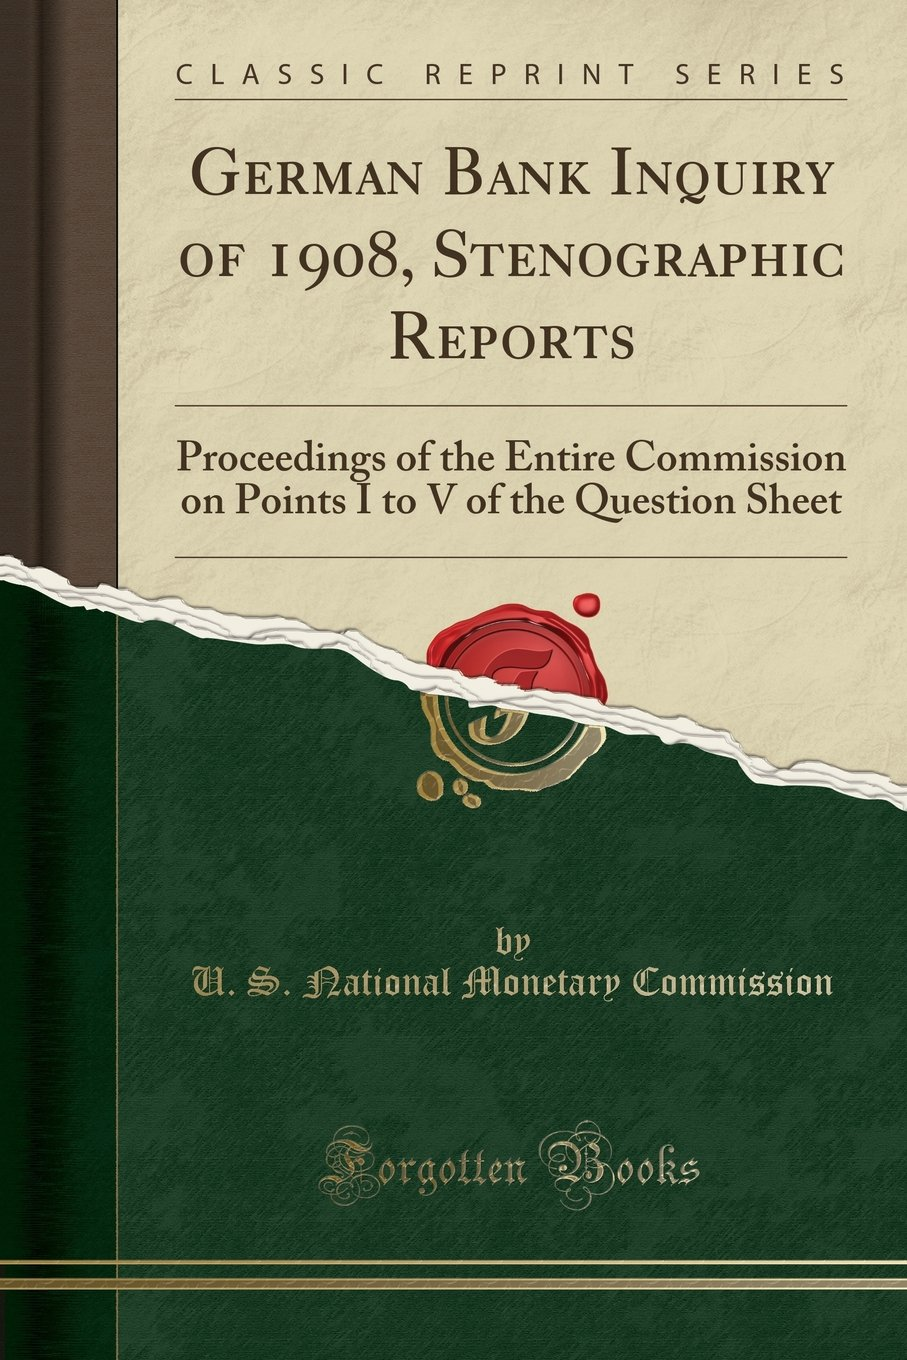 German Bank Inquiry of 1908, Stenographic Reports: Proceedings of the Entire Commission on Points I to V of the Question Sheet (Classic Reprint) pdf epub